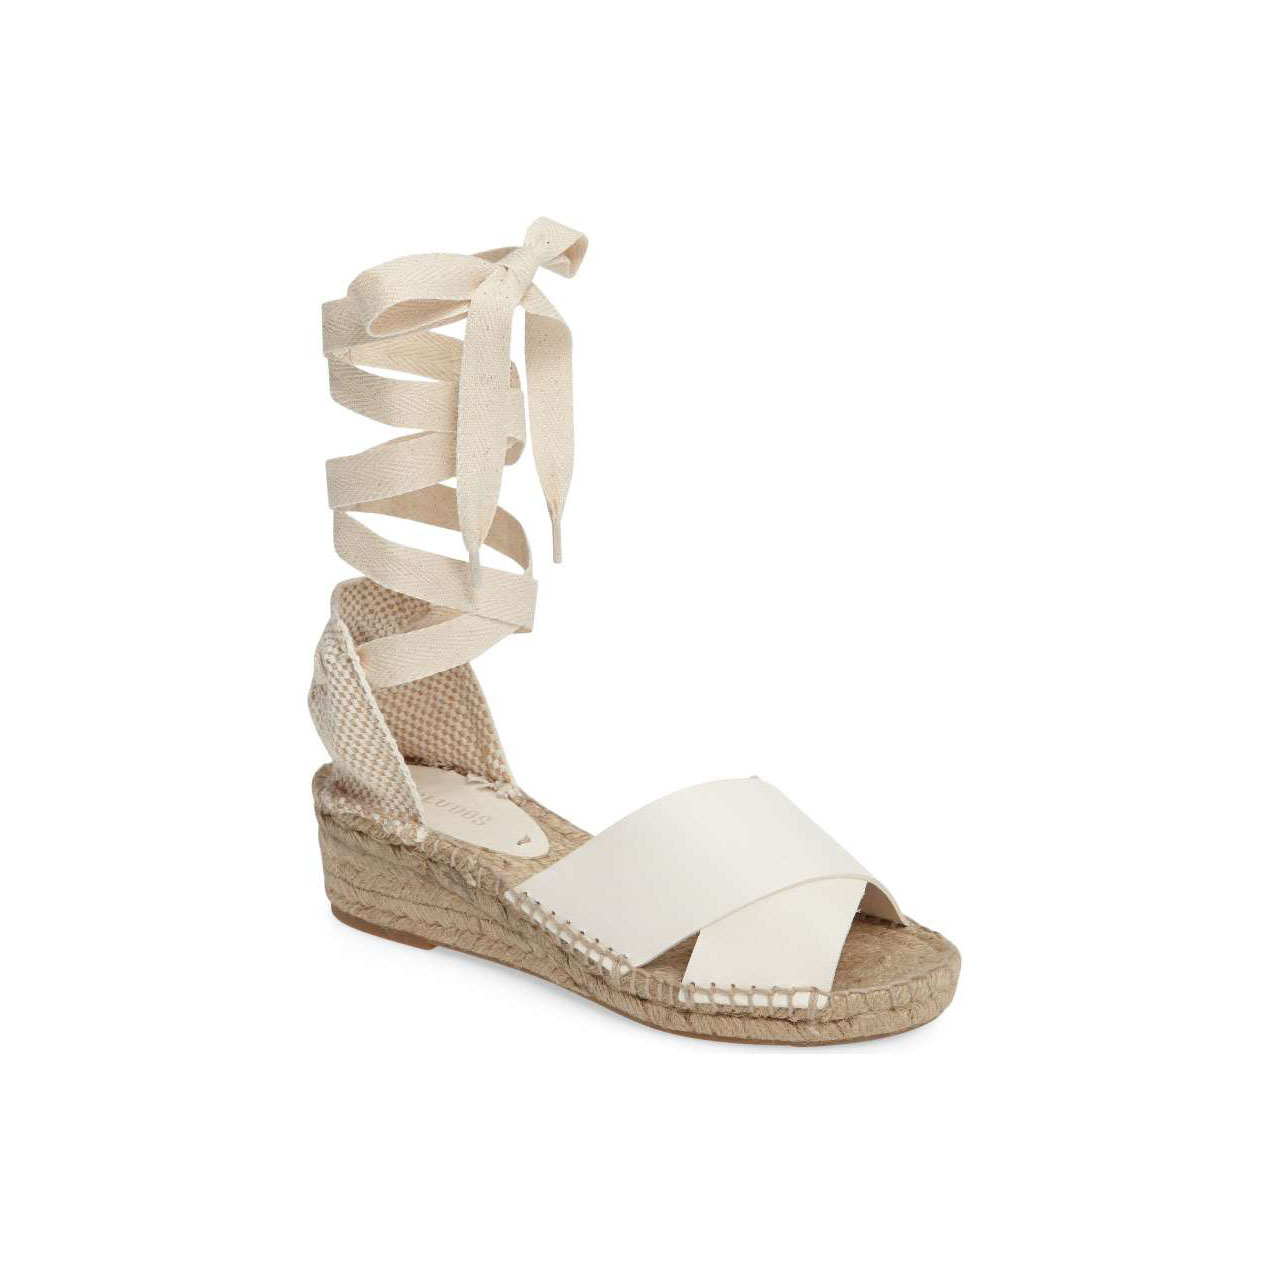 Ivory Leather Tie-Up Espadrille Wedge